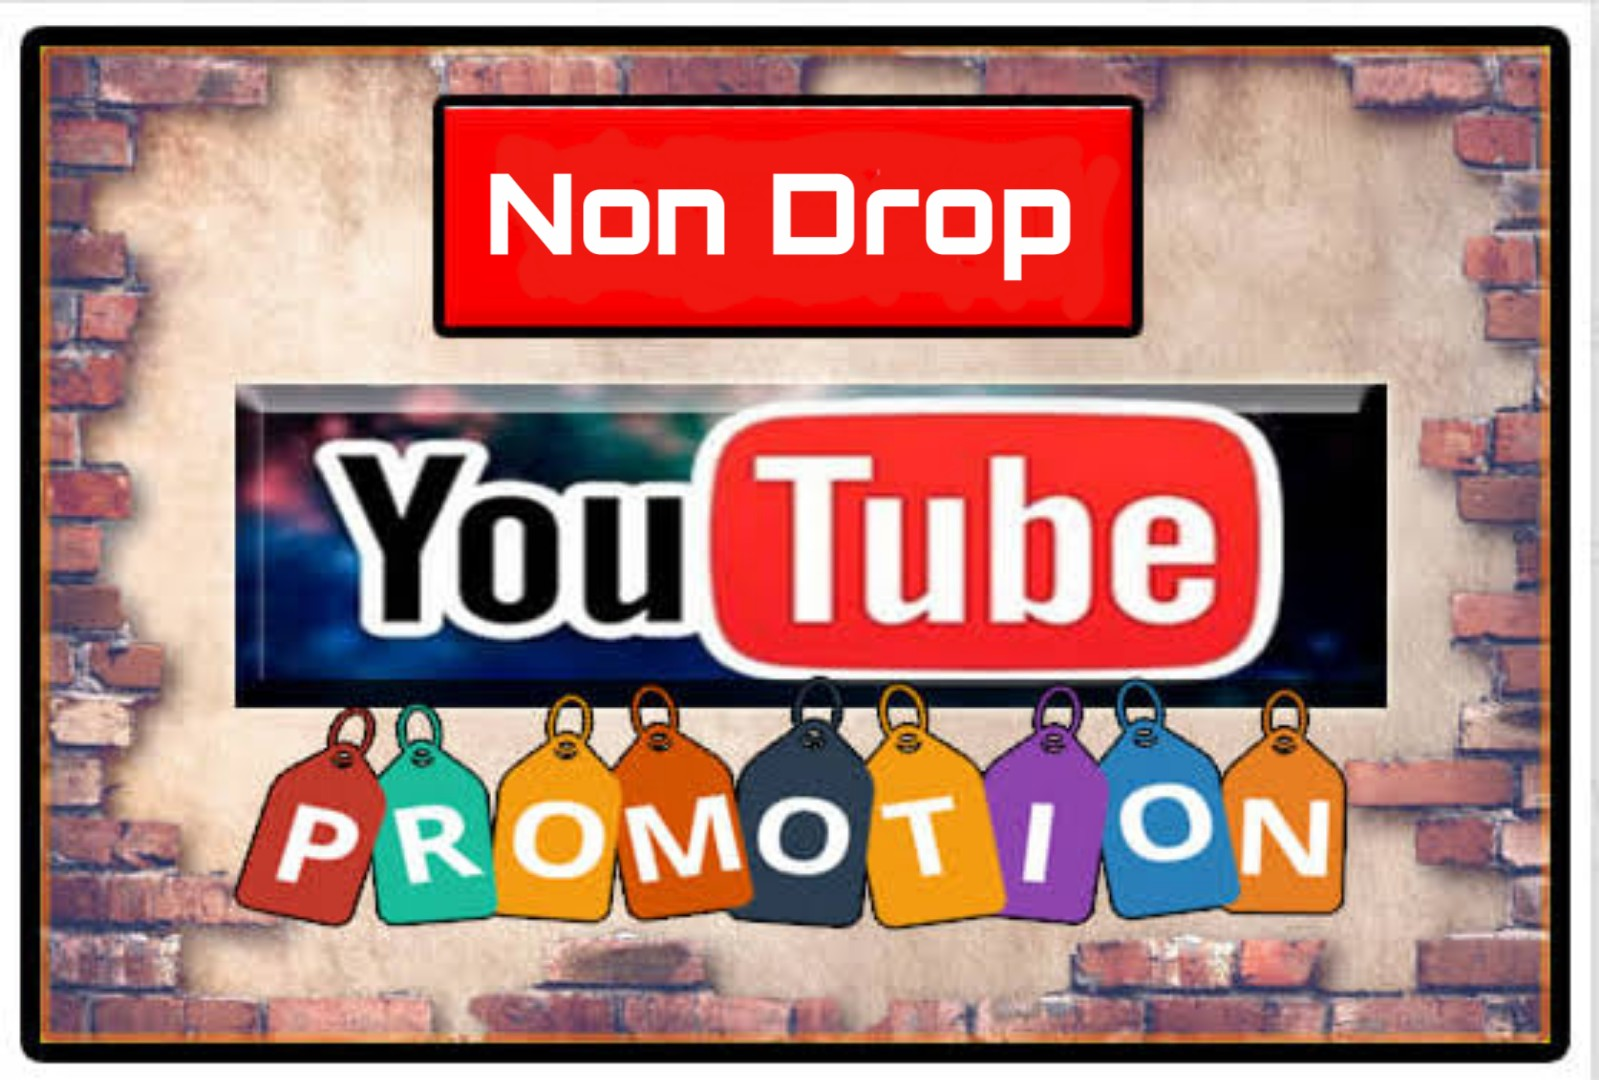 You tube Marketing Video Promotion Life time Guaranteed